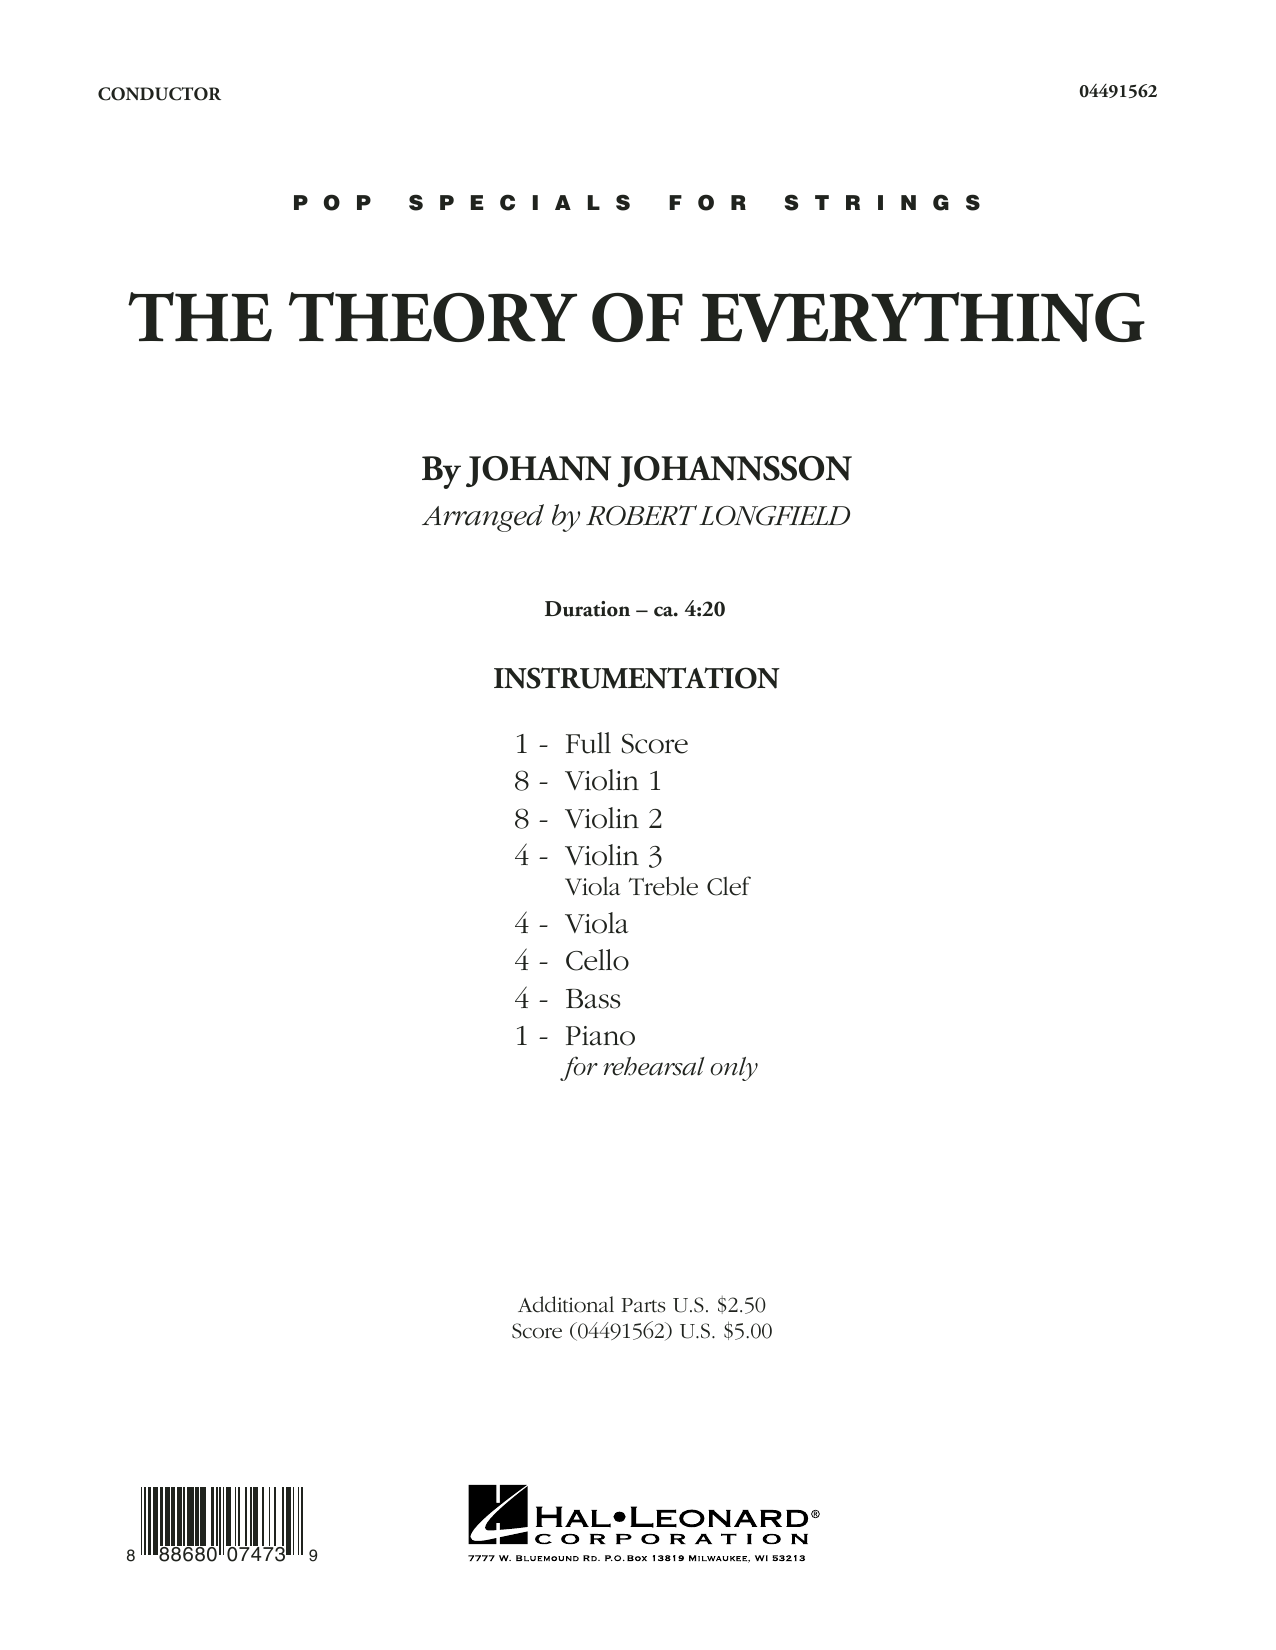 The Theory of Everything (COMPLETE) sheet music for orchestra by Robert Longfield and Johann Johannsson. Score Image Preview.